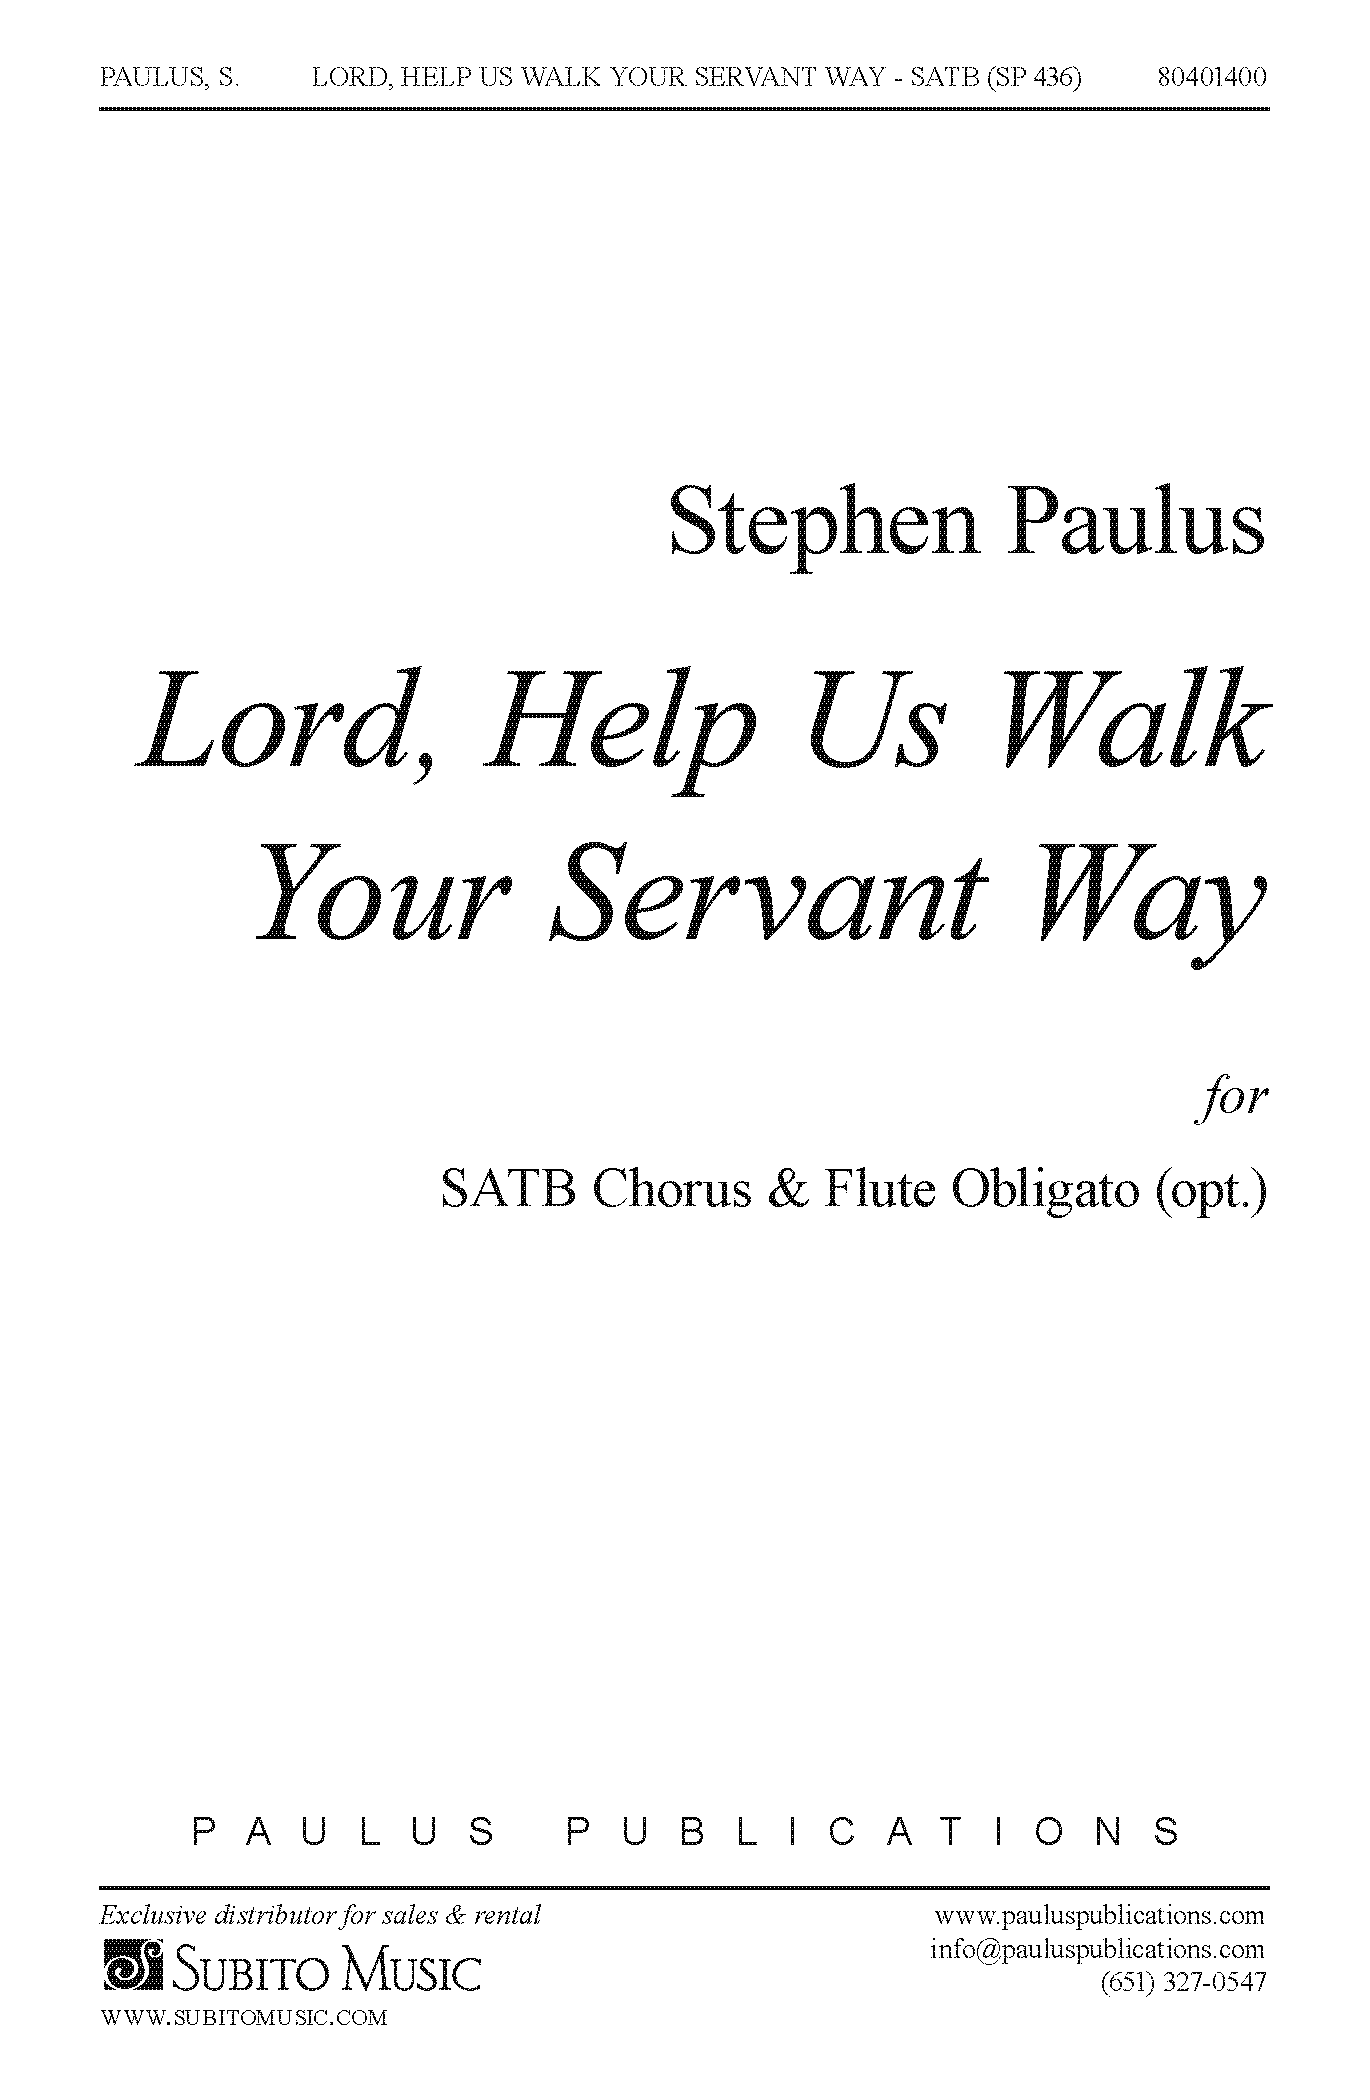 Lord, Help Us Walk Your Servant Way for SATB Chorus, opt. Flute